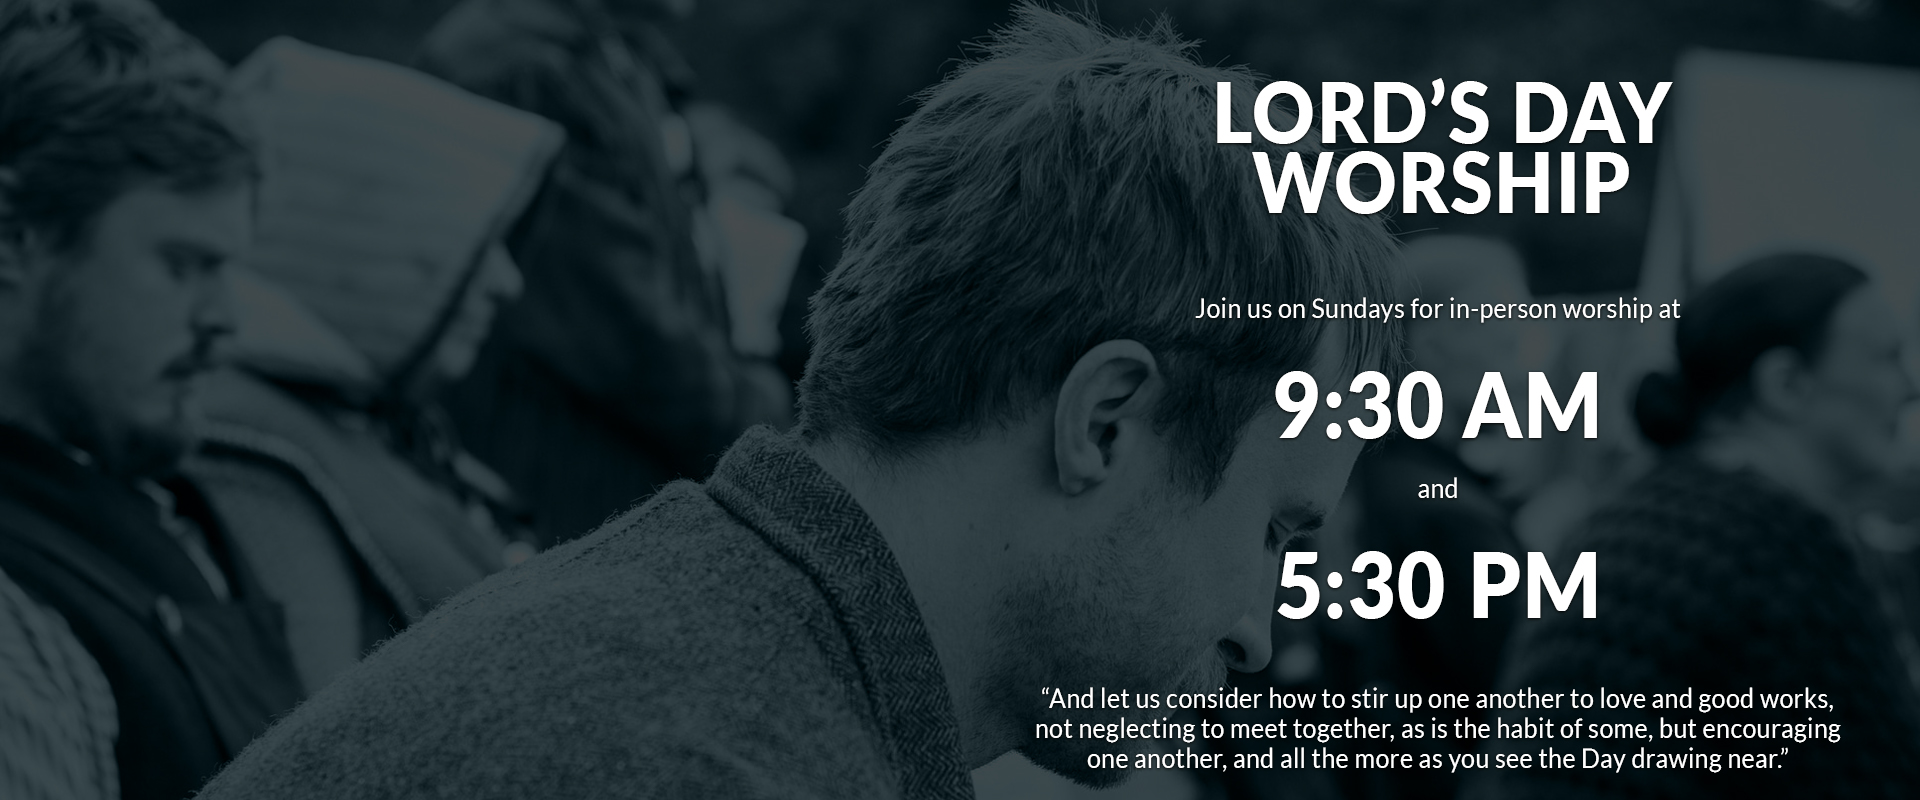 Lord's Day Worship